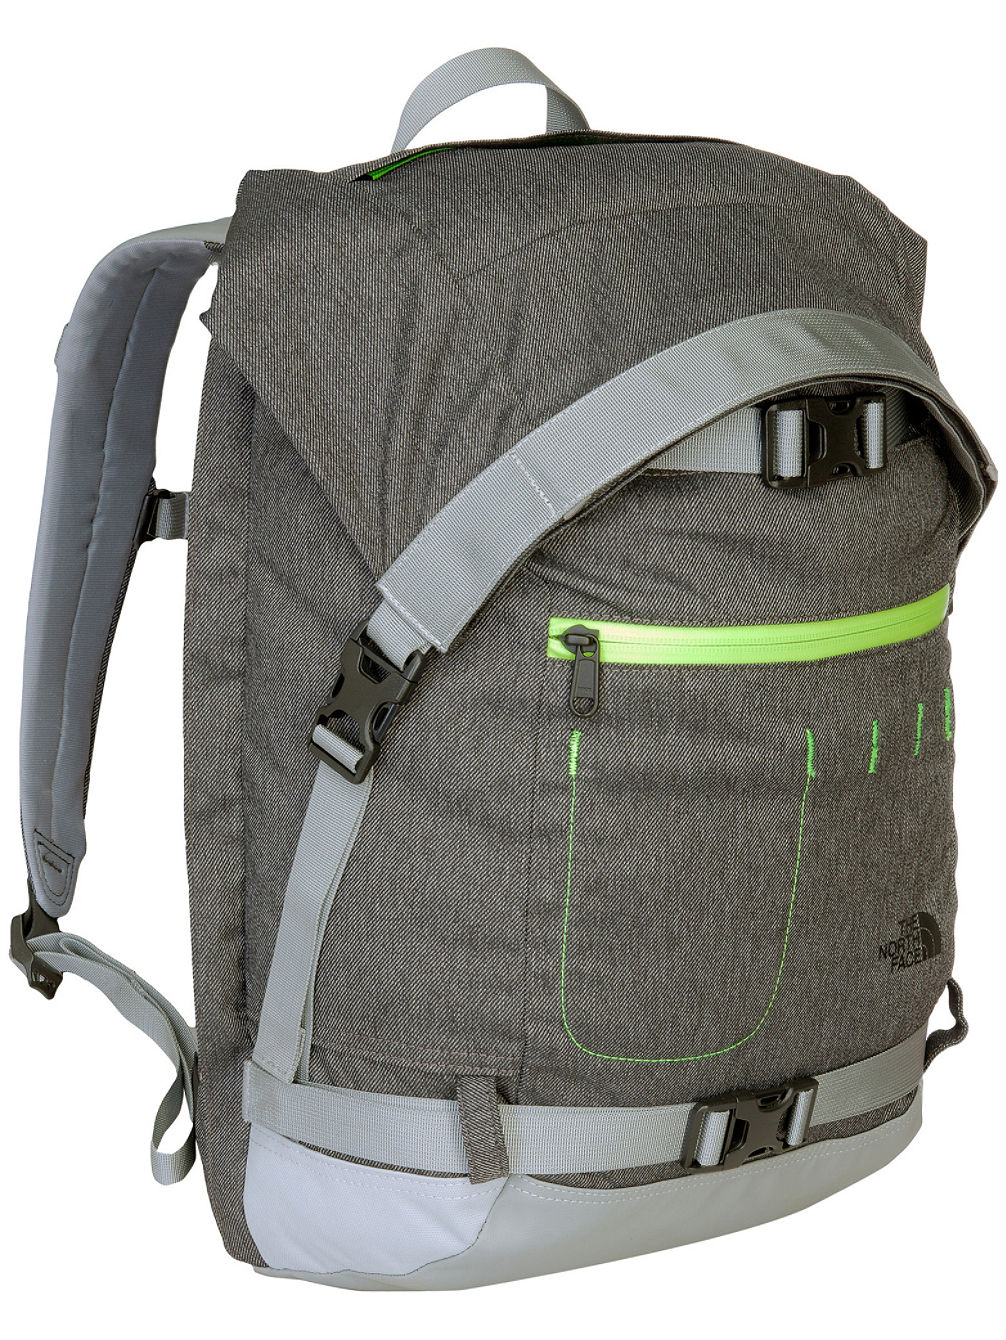 a1c15ca24 Pickford Rolltop Backpack